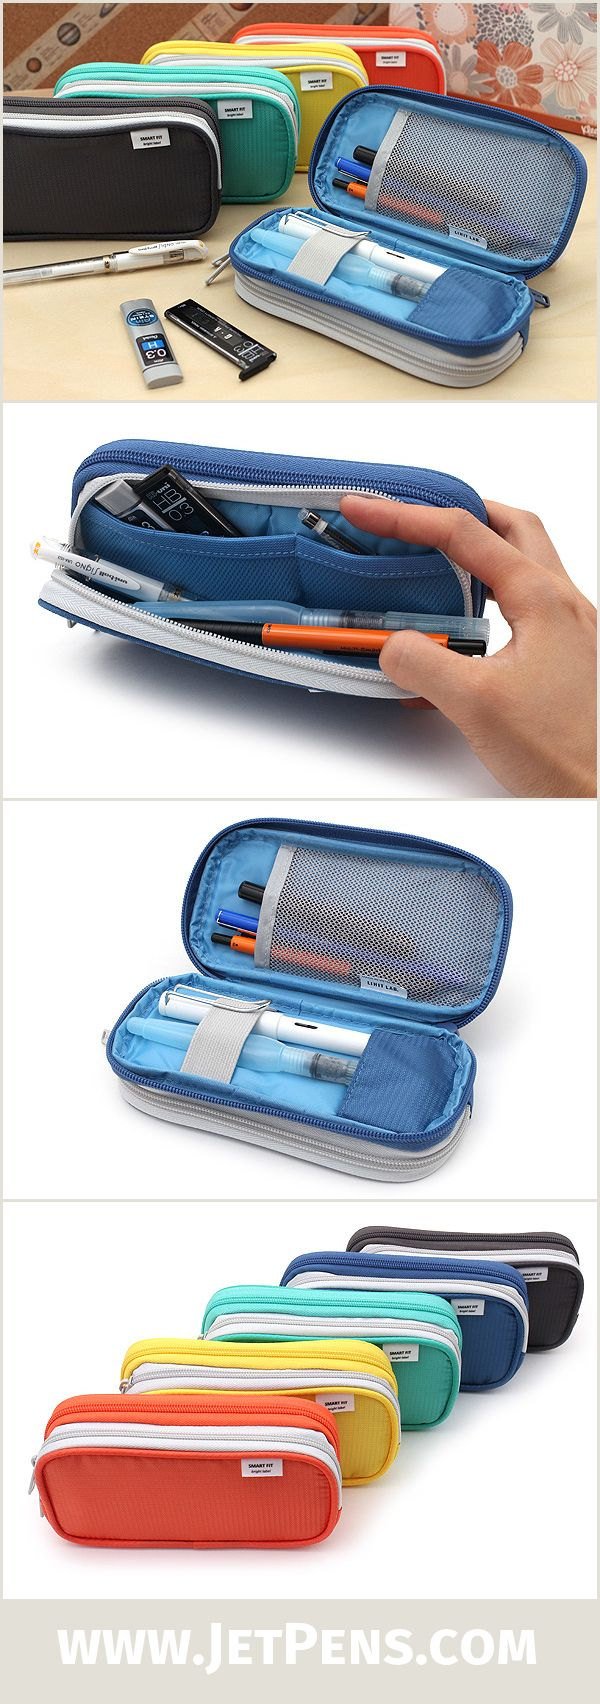 This roomy Lihit Lab Smart Fit Double Pen Case offers two types of stationery storage in one design: one side is a large pouch, while the other side is a book-style organizer.